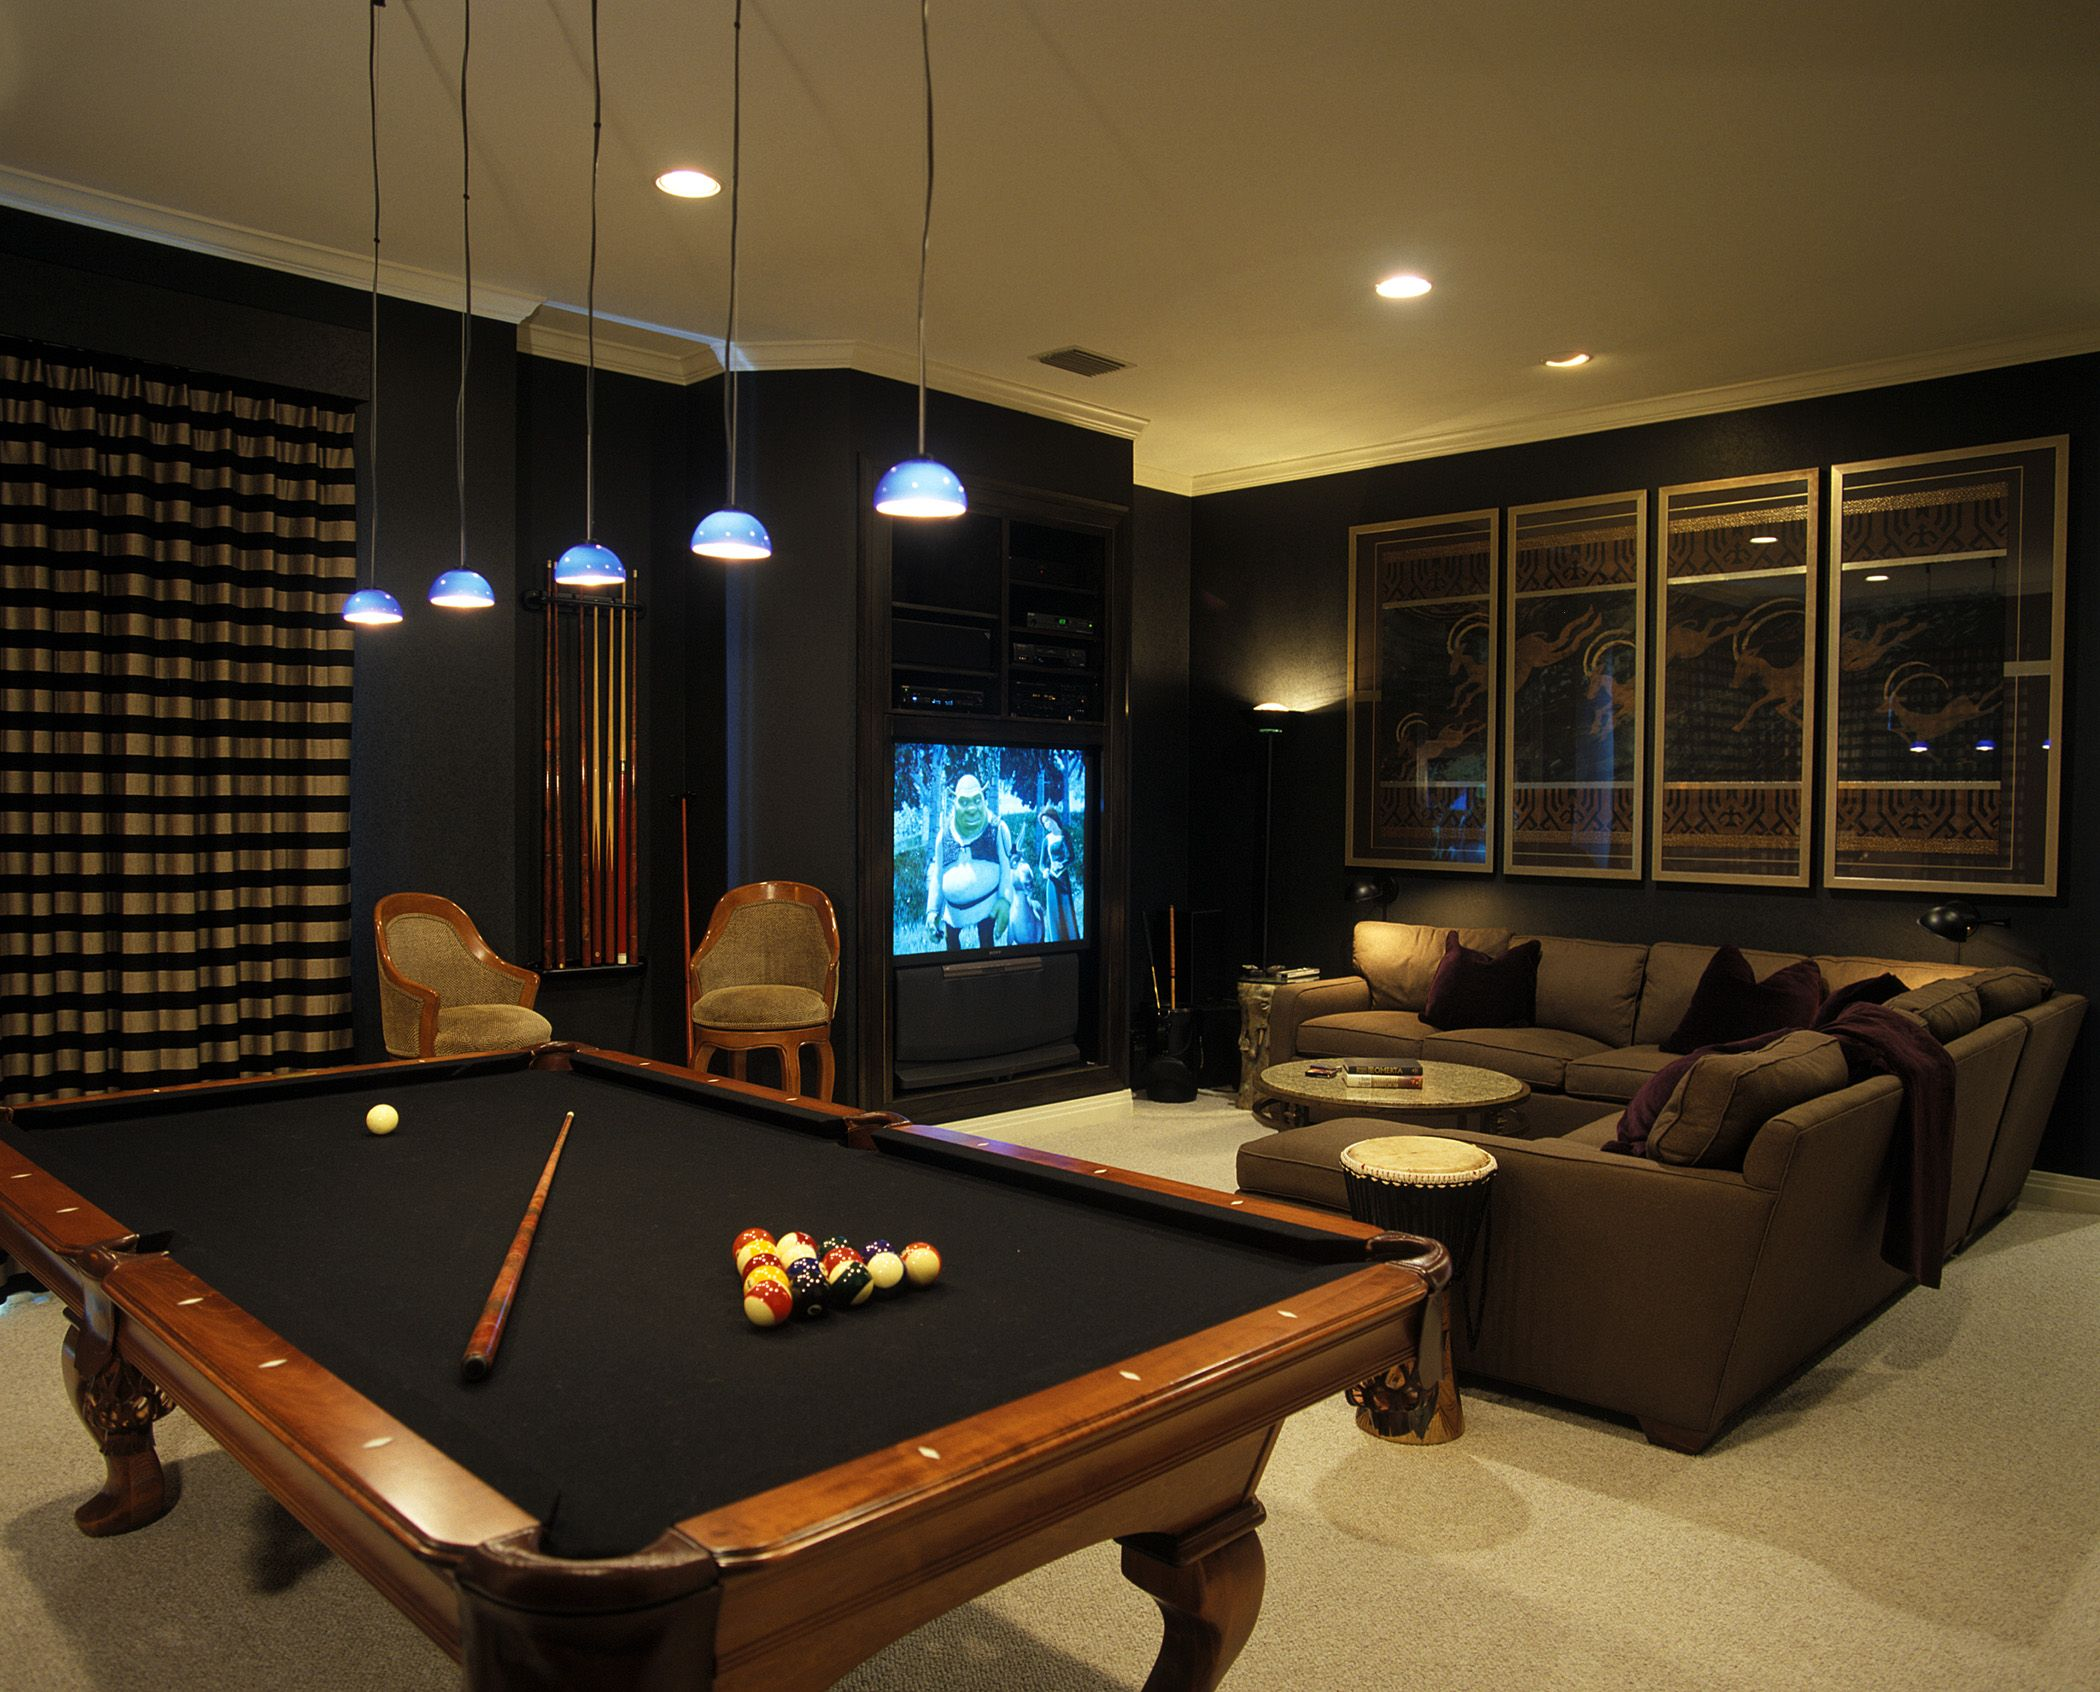 Männerzimmer Einrichten Dark Media Room With Pool Table Man Cave Pool Table Room Man